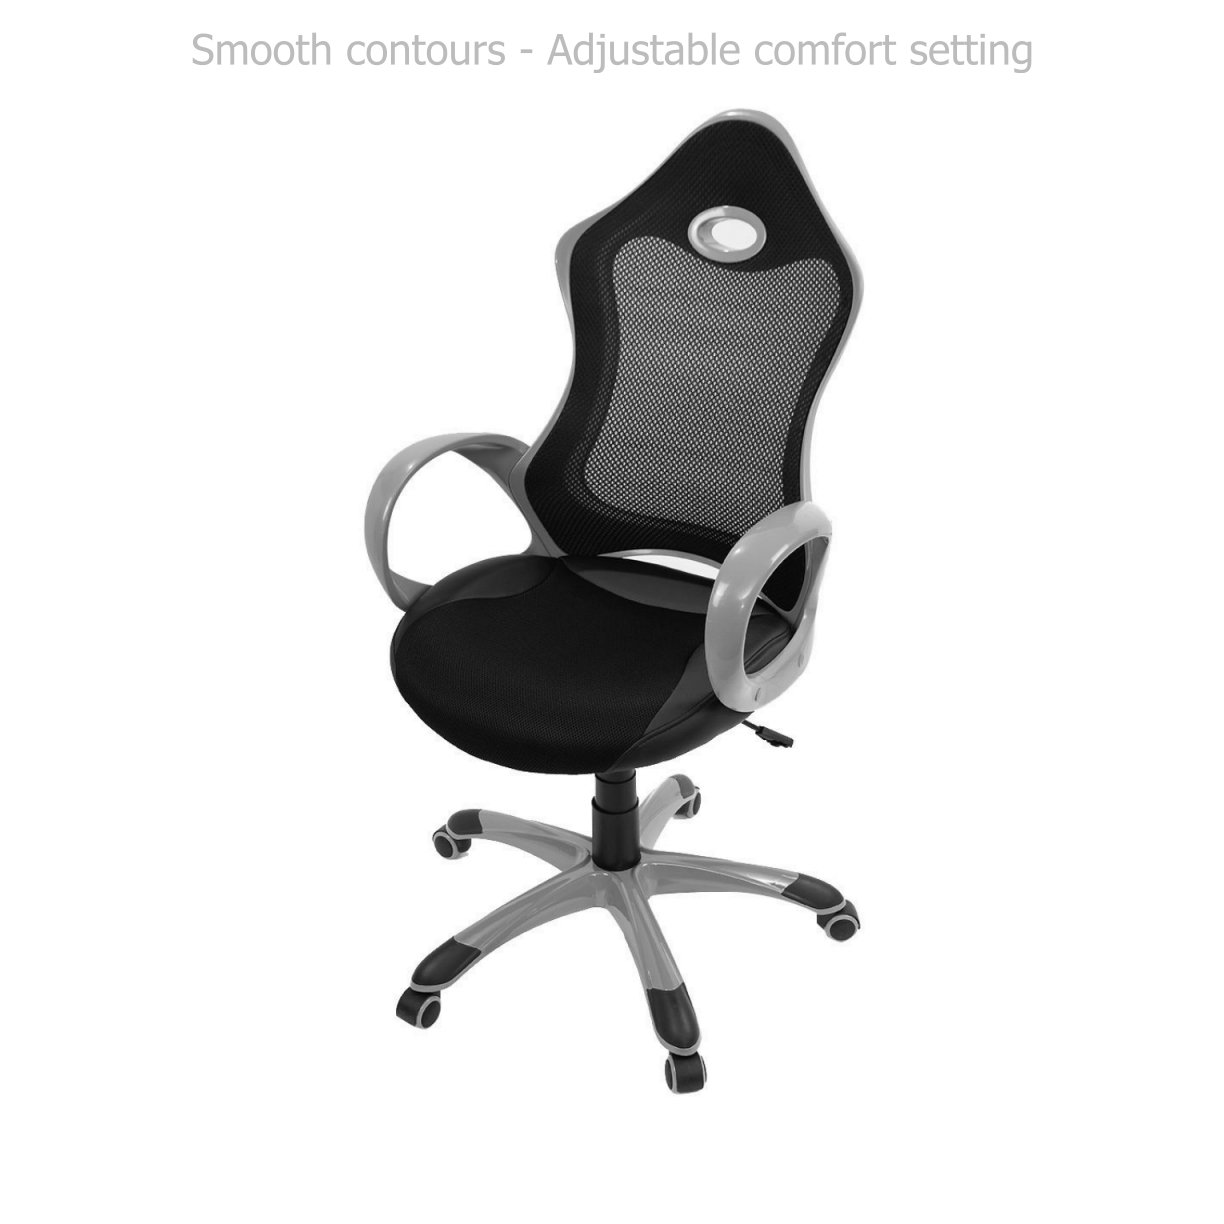 Modern Ergonomic Design High Back Chair Mesh Seats Soft Sponge Upholstery 360 Degree Swivel Home Office Gaming Executive Computer Desk Task - Black/Grey #1540